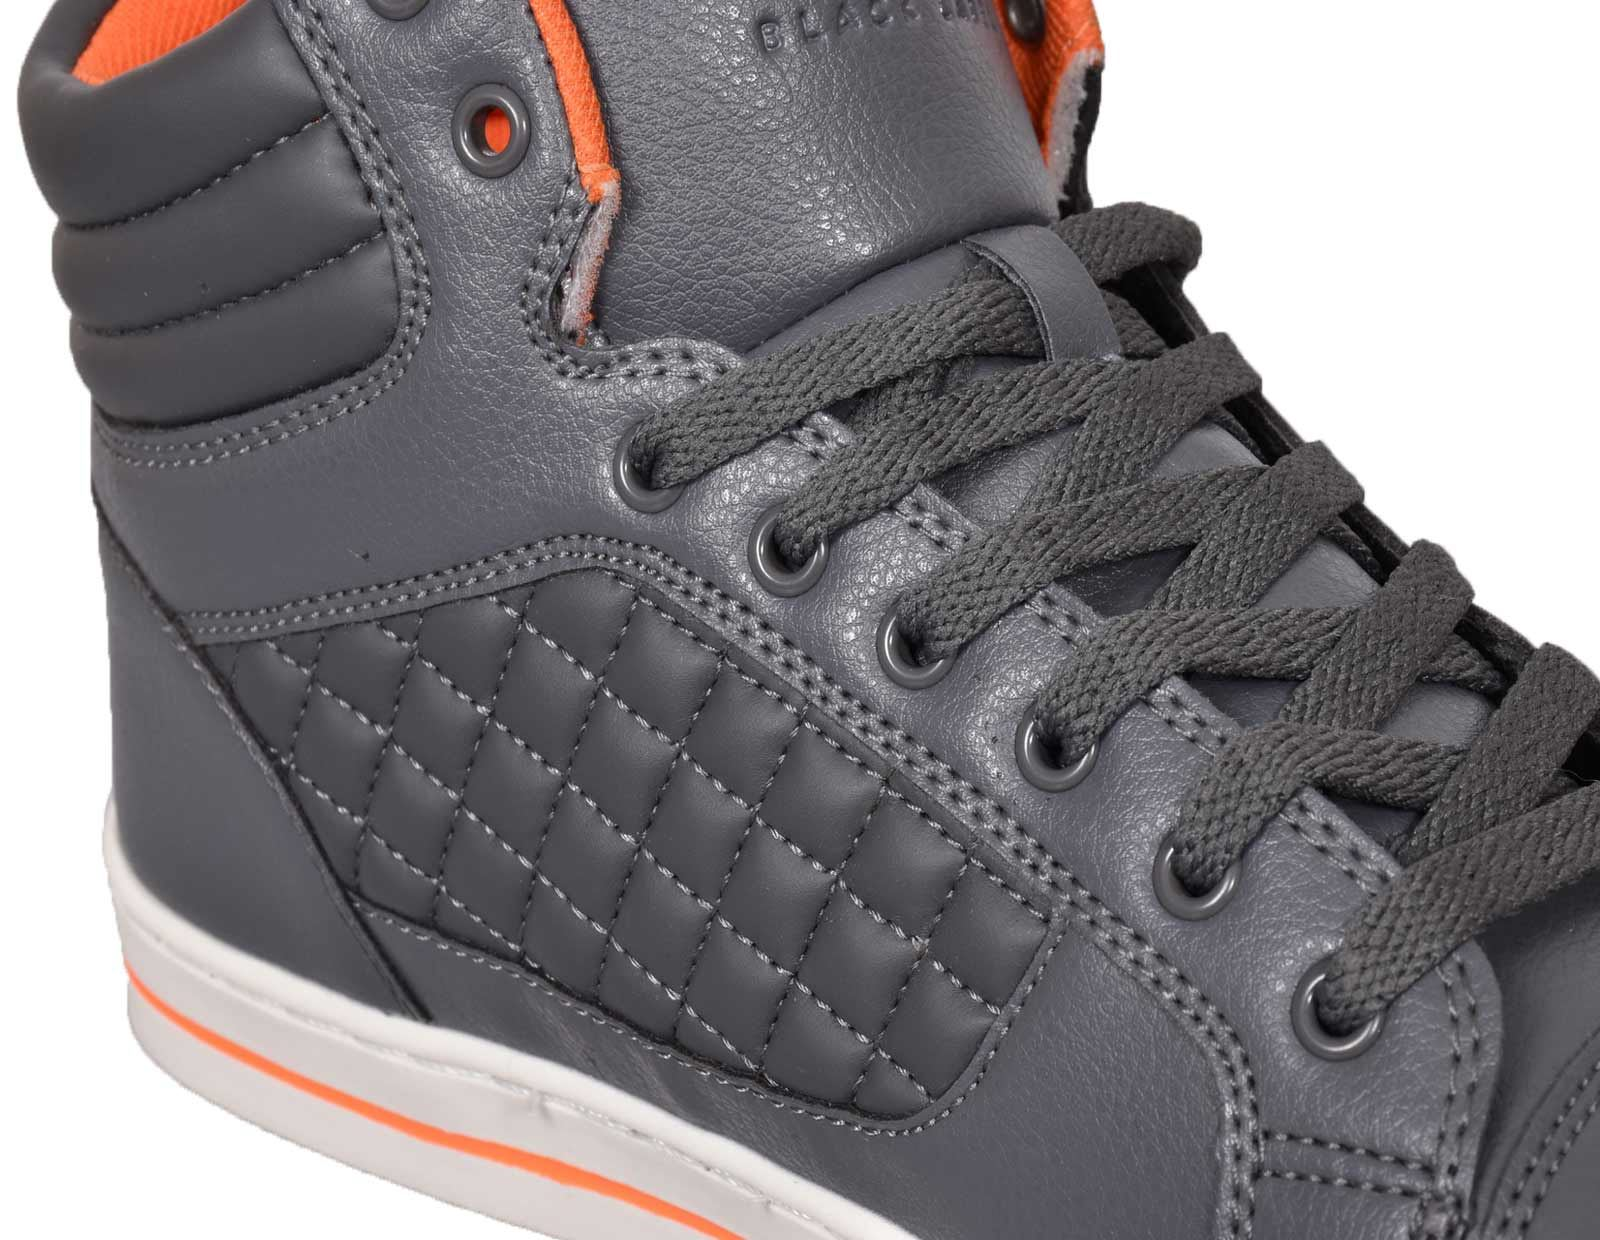 Mens-Trainers-Lace-up-Crosshatch-High-Tops-Ankle-Padded-Shoes-New-UK-Sizes-7-12 thumbnail 17